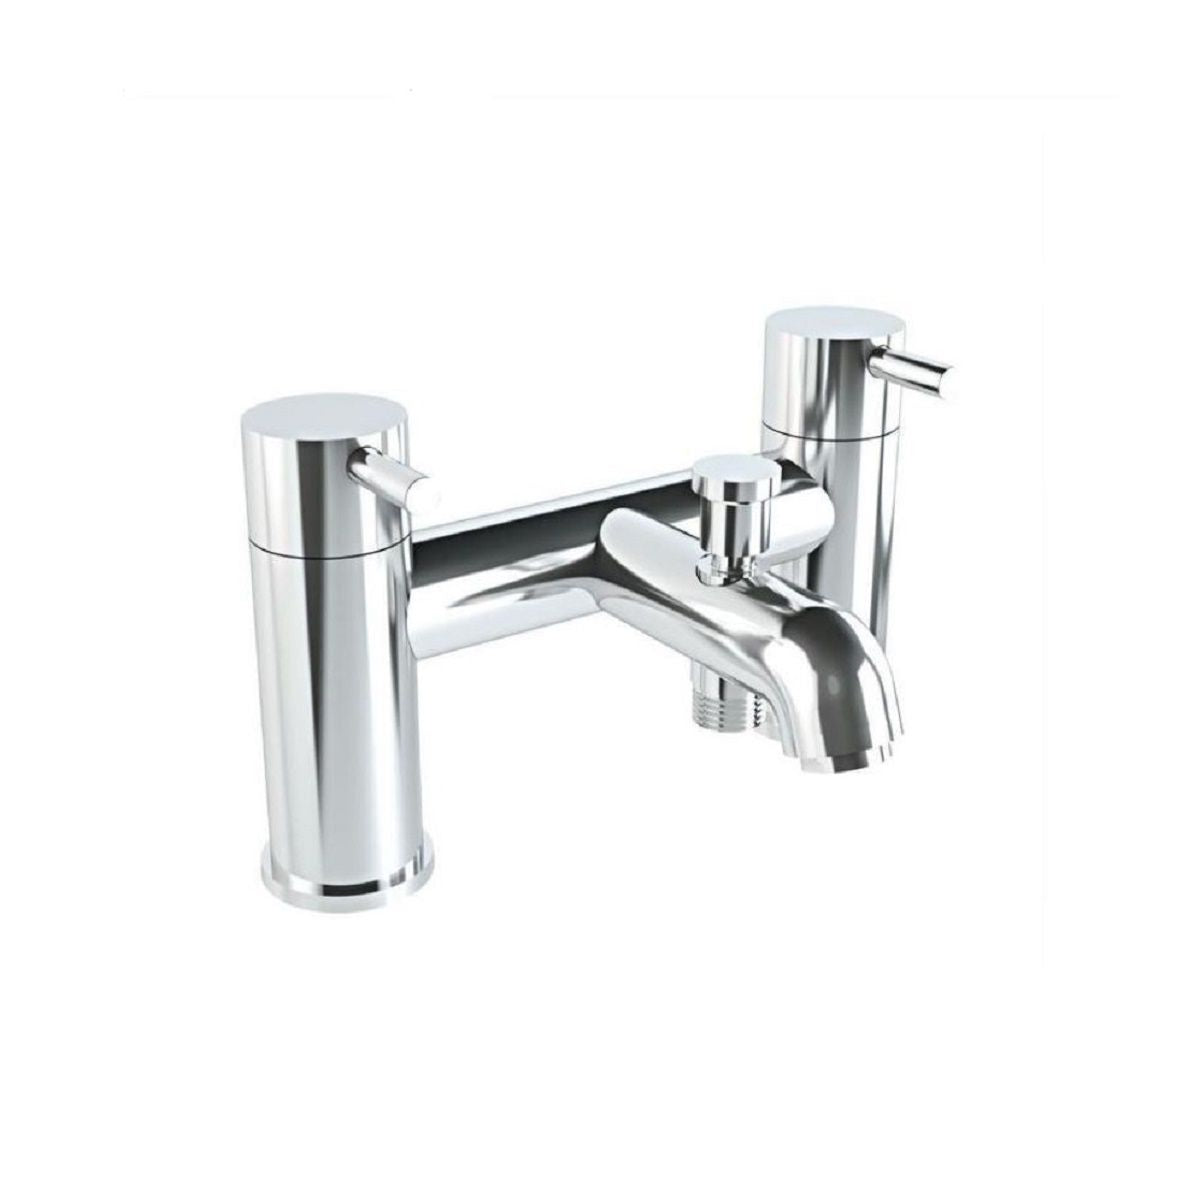 Minimax S Bath Shower Mixer - Blue Sky Bathrooms Ltd